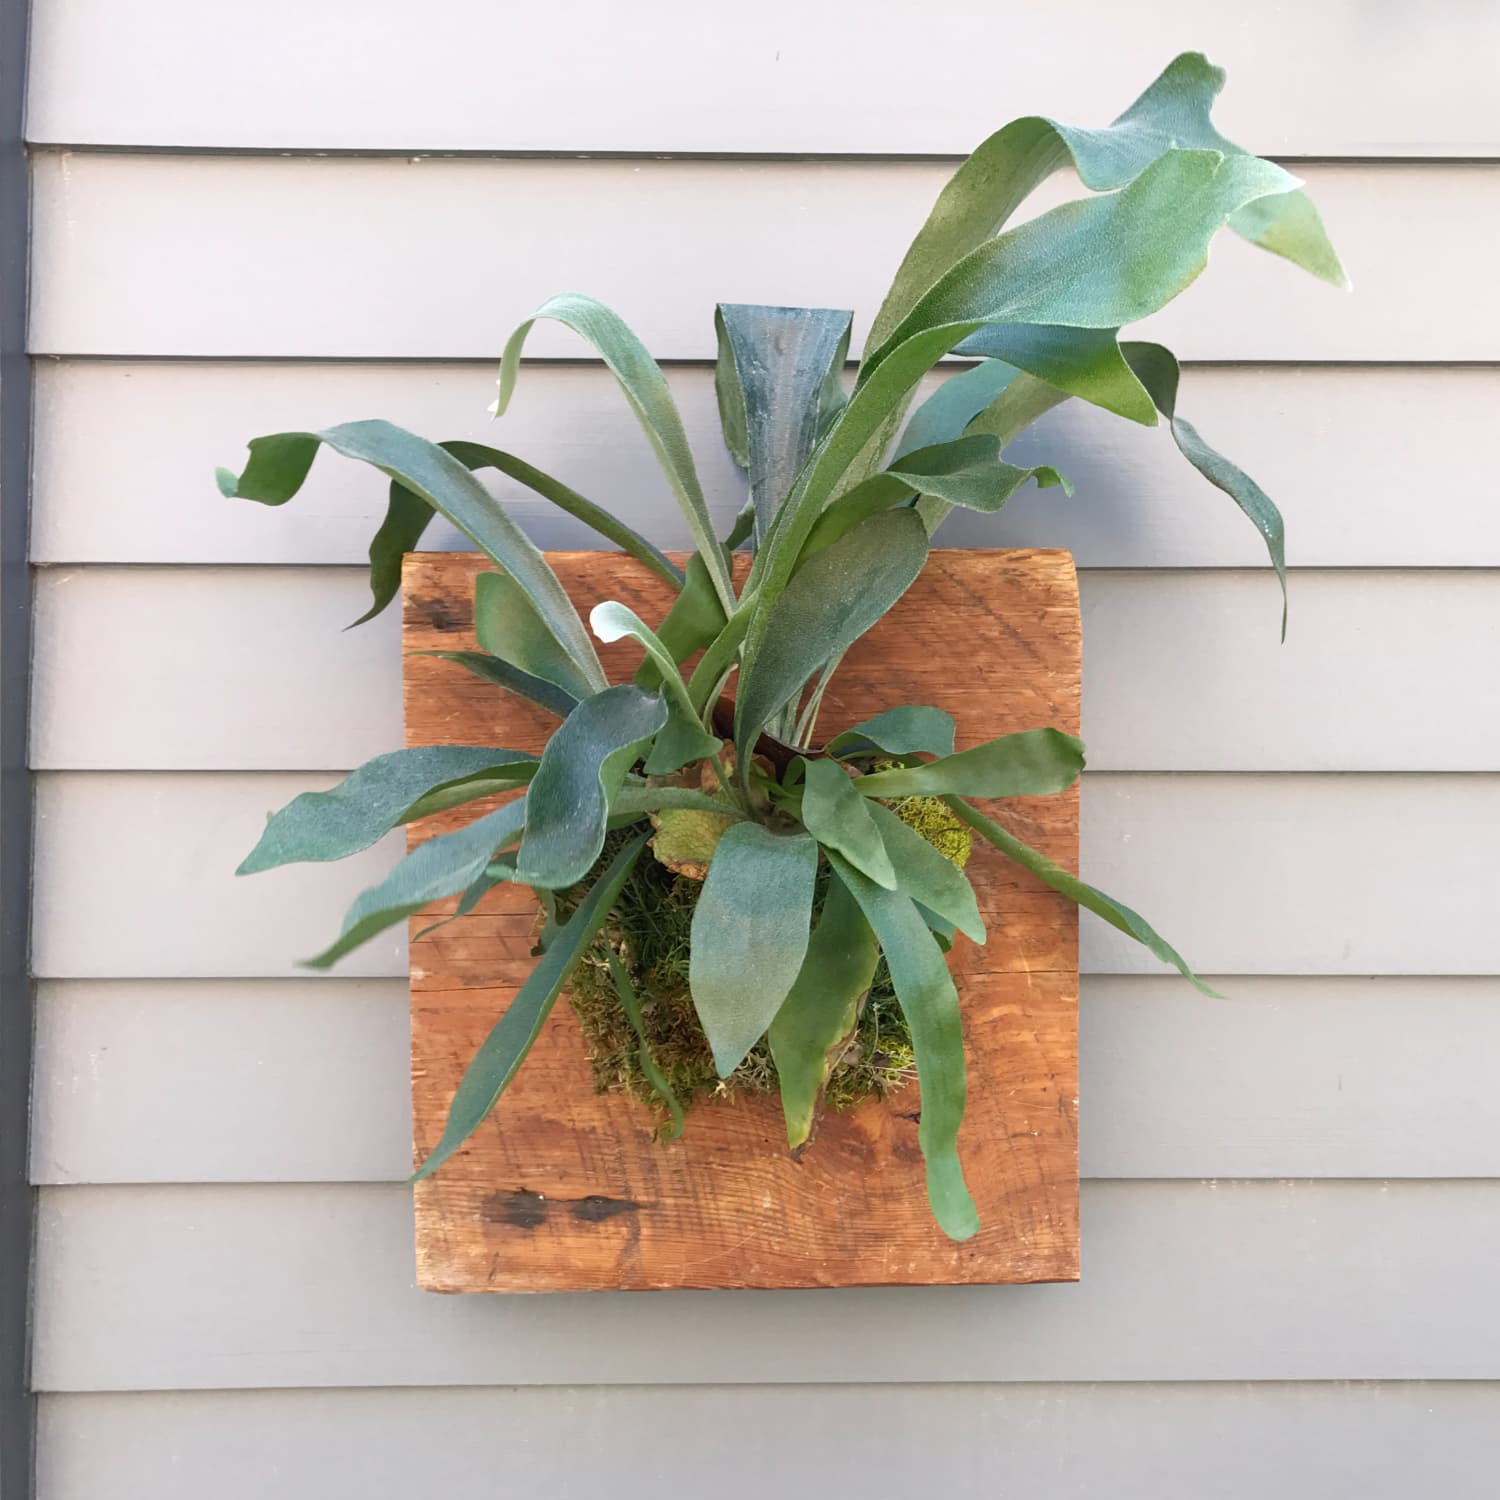 How To Mount a Staghorn Fern | Apartment Therapy